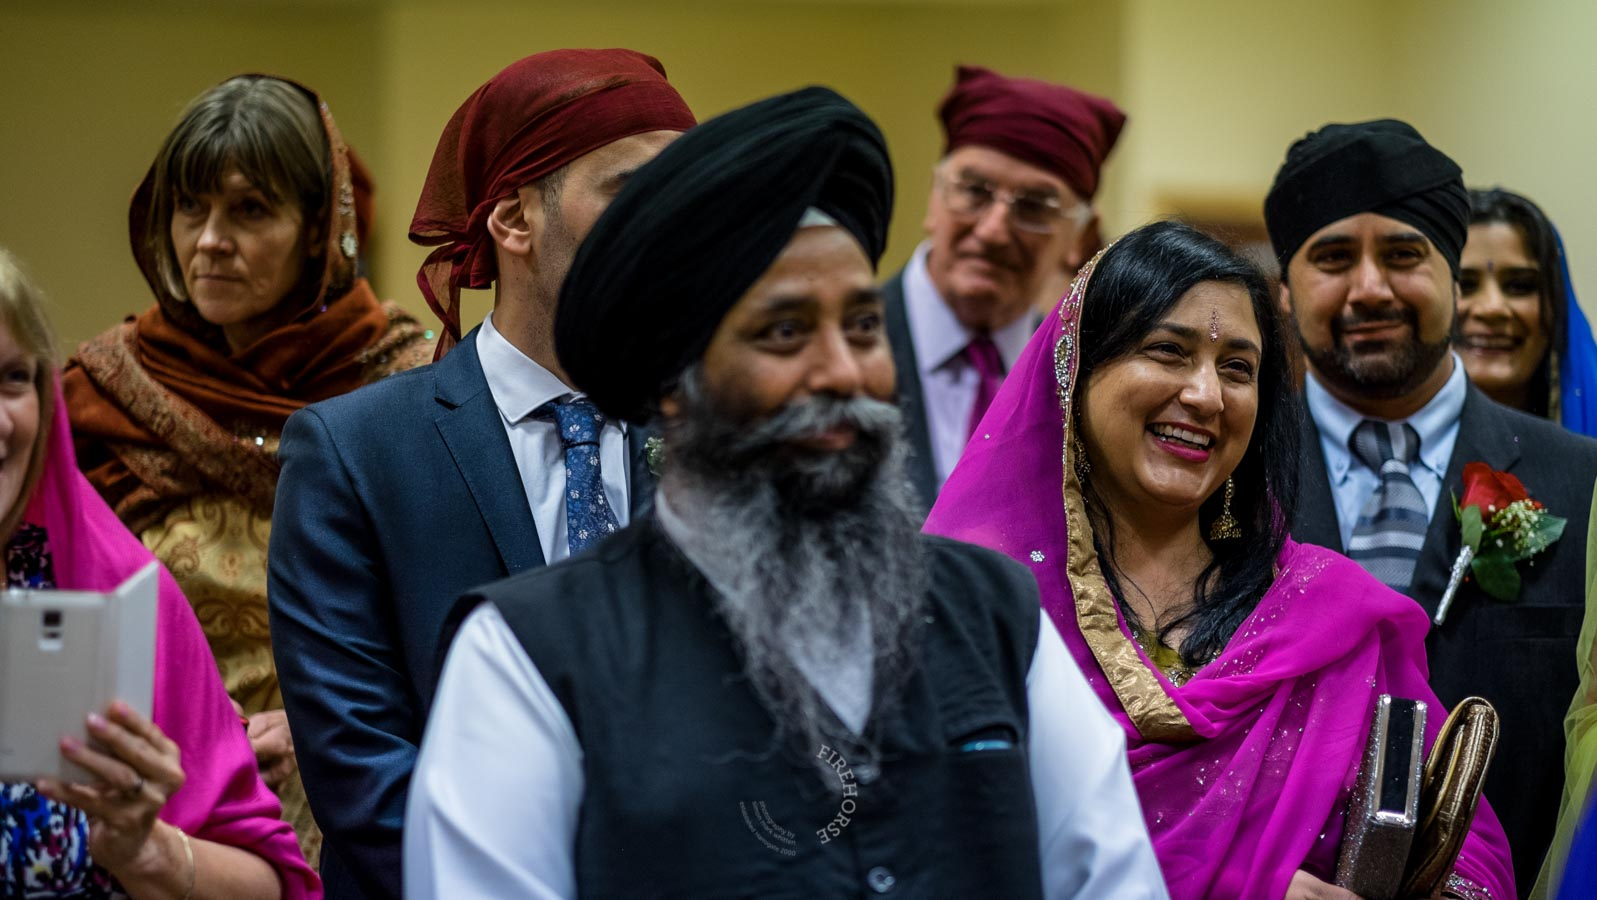 sikh-wedding-photography-026